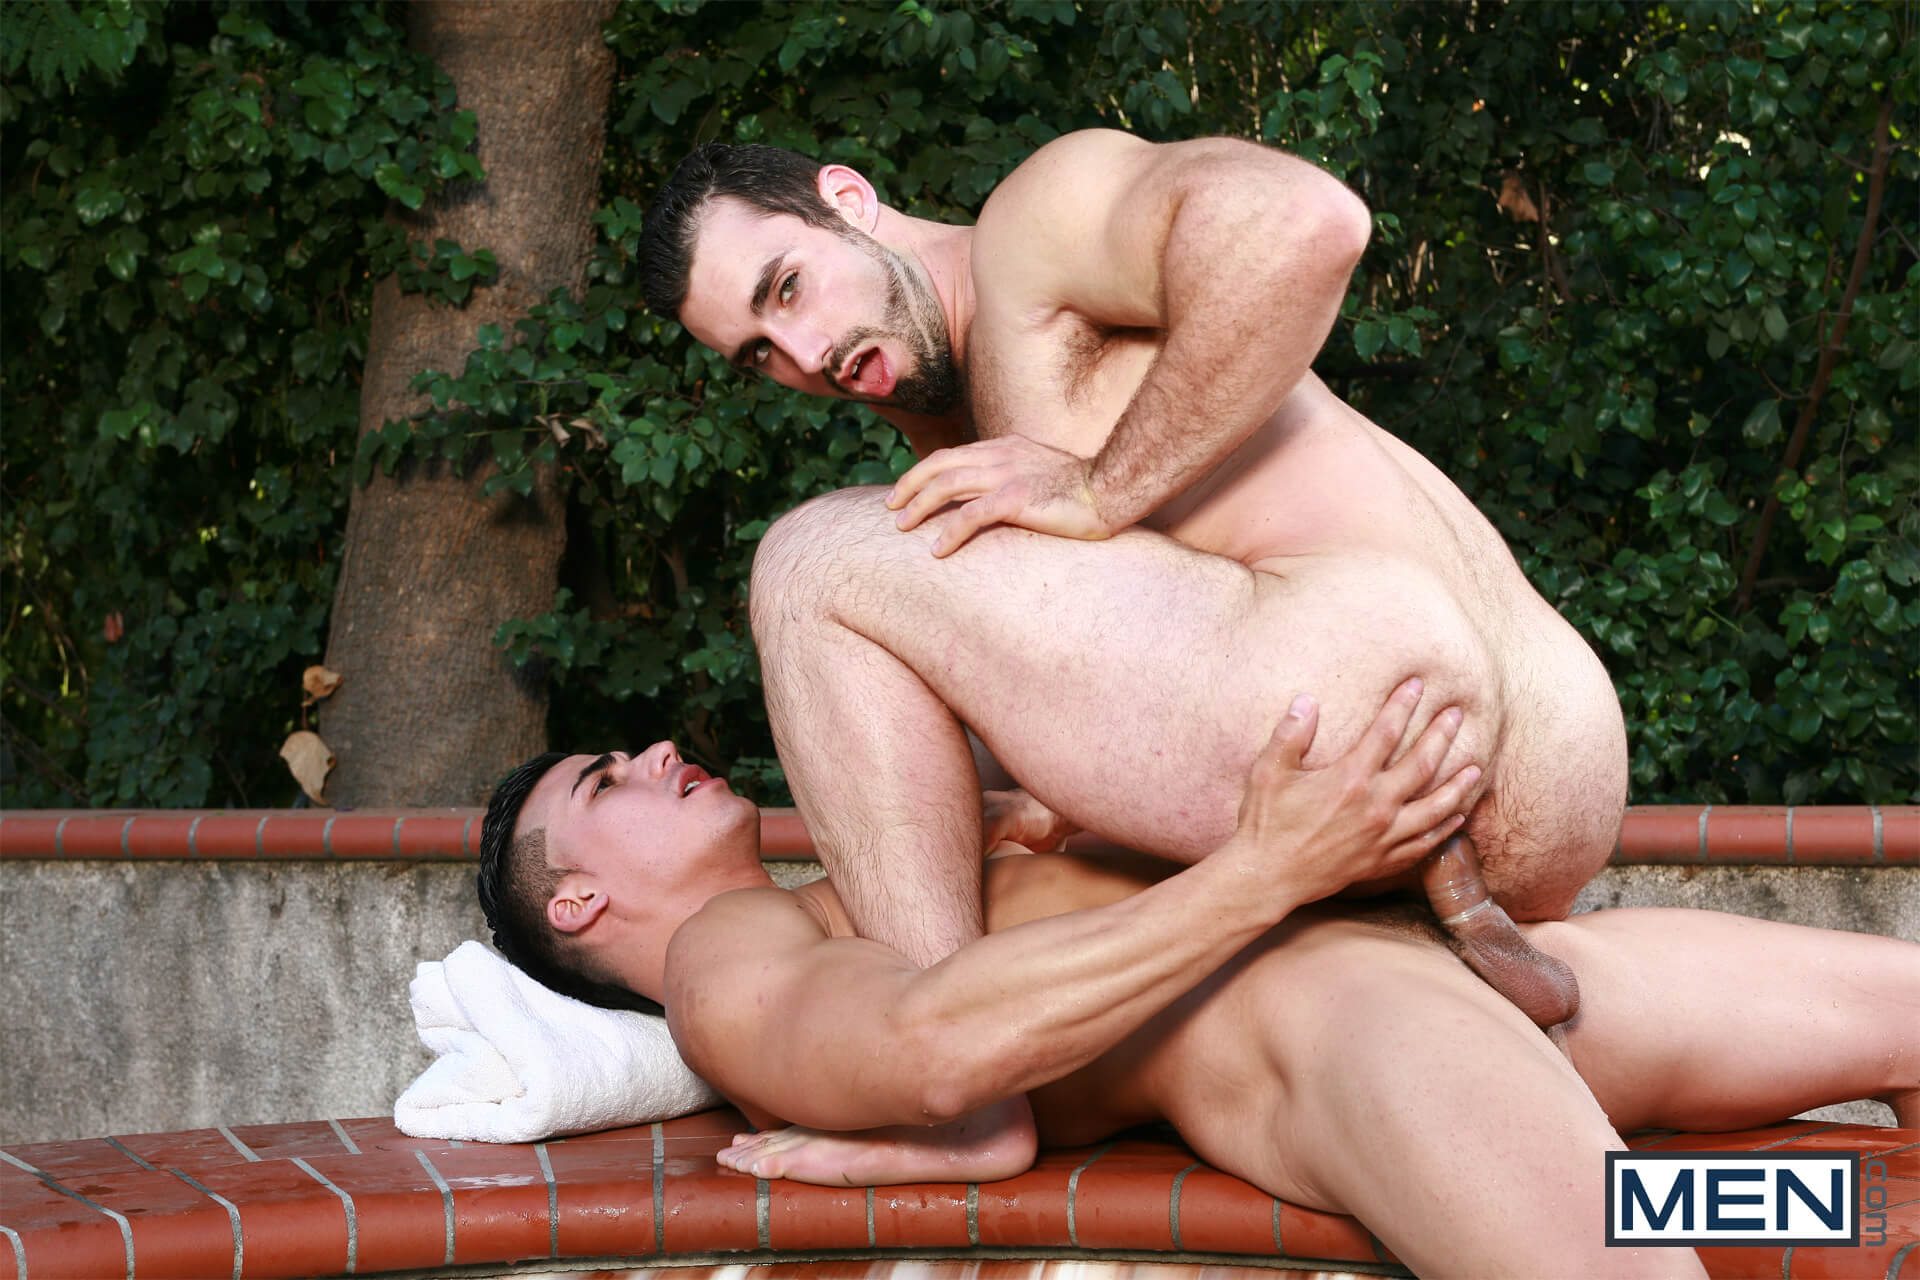 men gods of men allure jaxton wheeler topher di maggio gay porn blog image 15